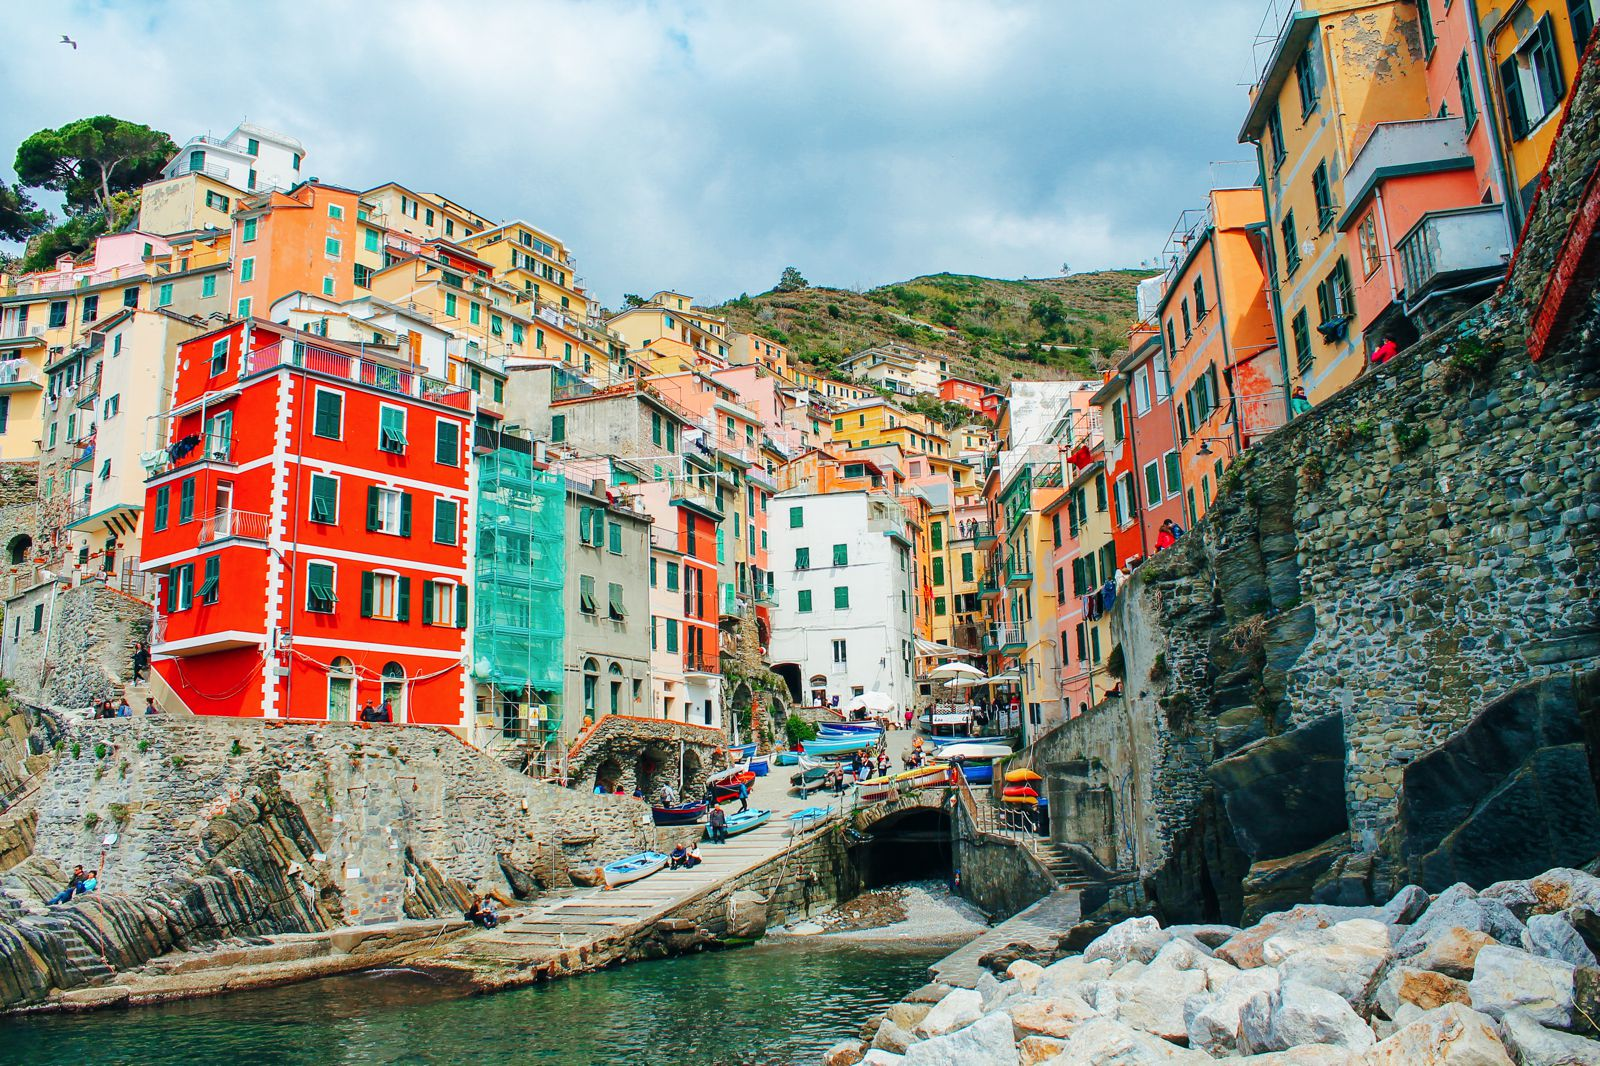 Riomaggiore in Cinque Terre, Italy - The Photo Diary! [1 of 5] (3)